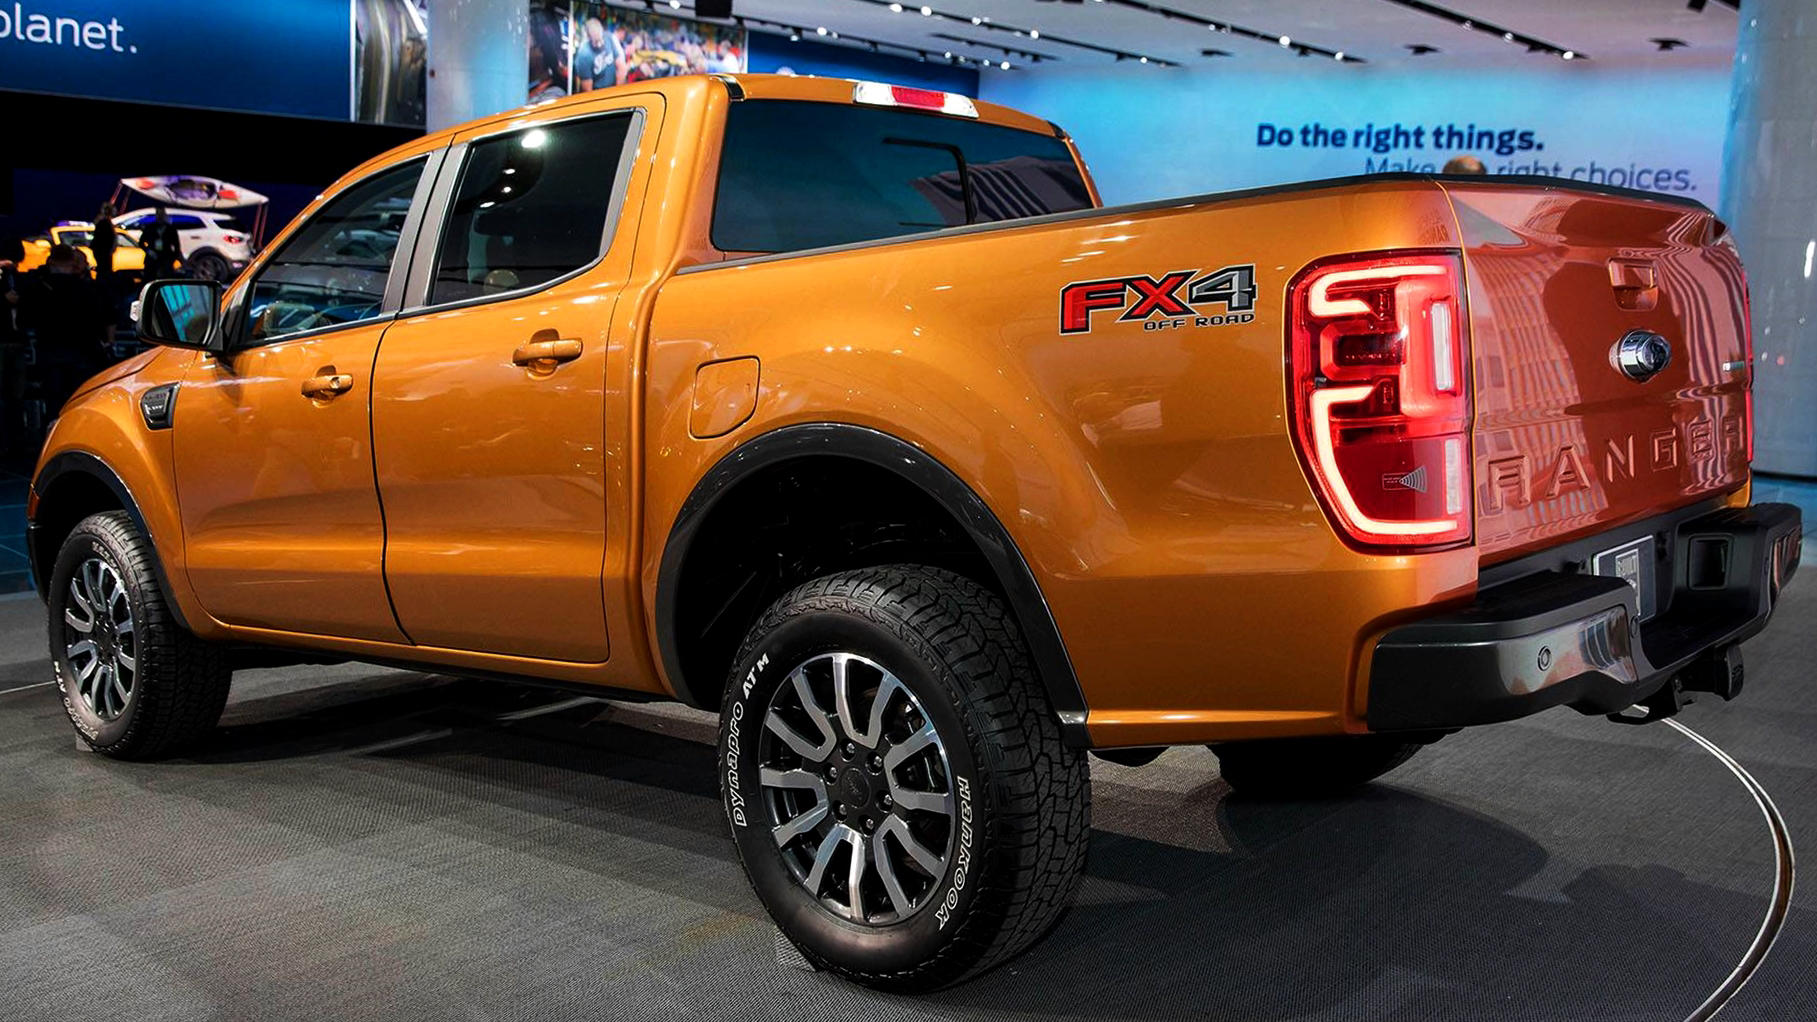 2019 Ford Ranger & Ranger Raptor – Everything you need to know